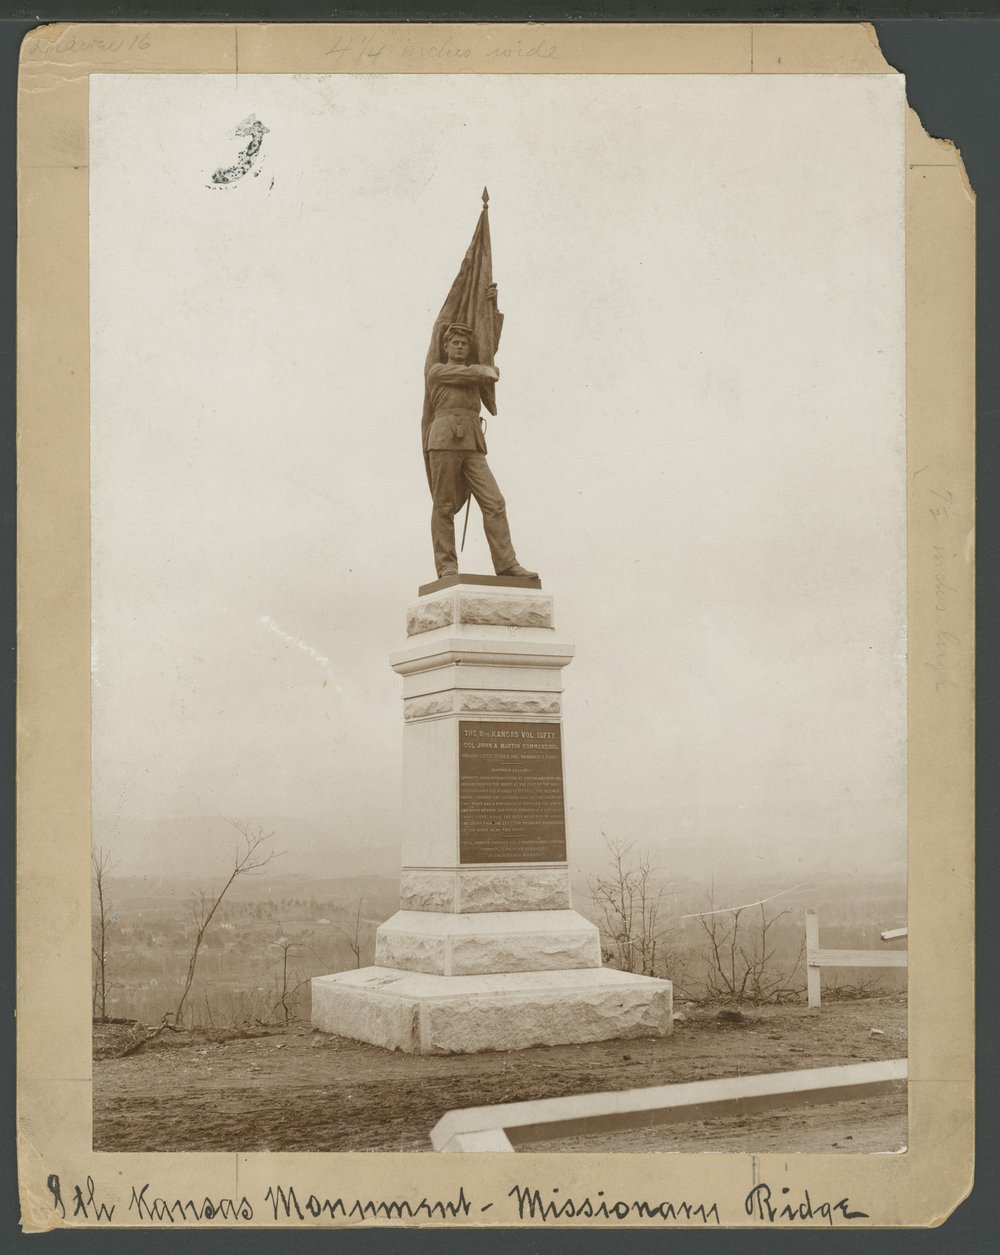 8th Kansas Volunteer Infantry monument at Missionary Ridge - *4